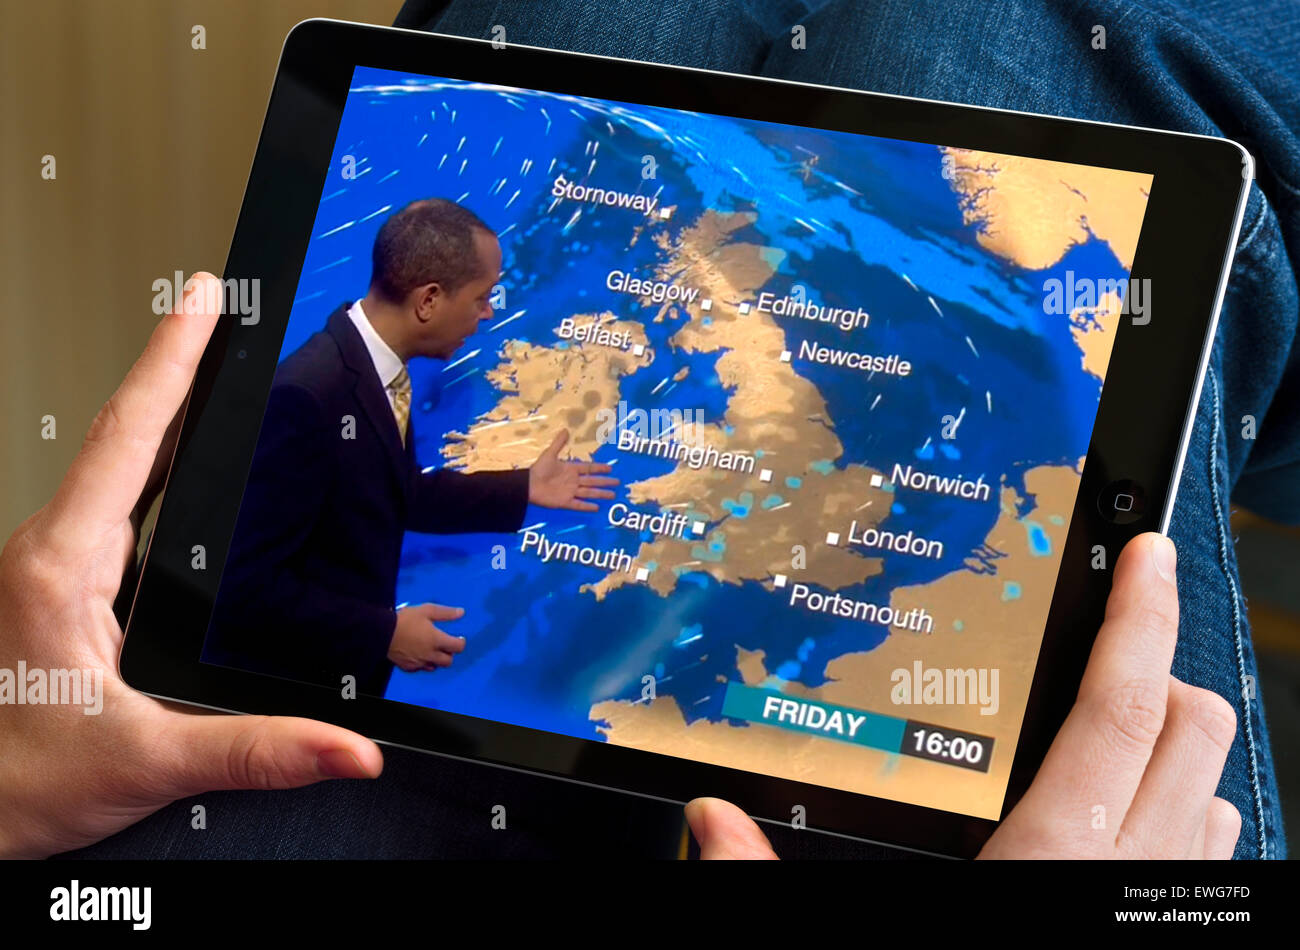 Watching the weather on the BBC News channel online streaming via an iPad Air - Stock Image